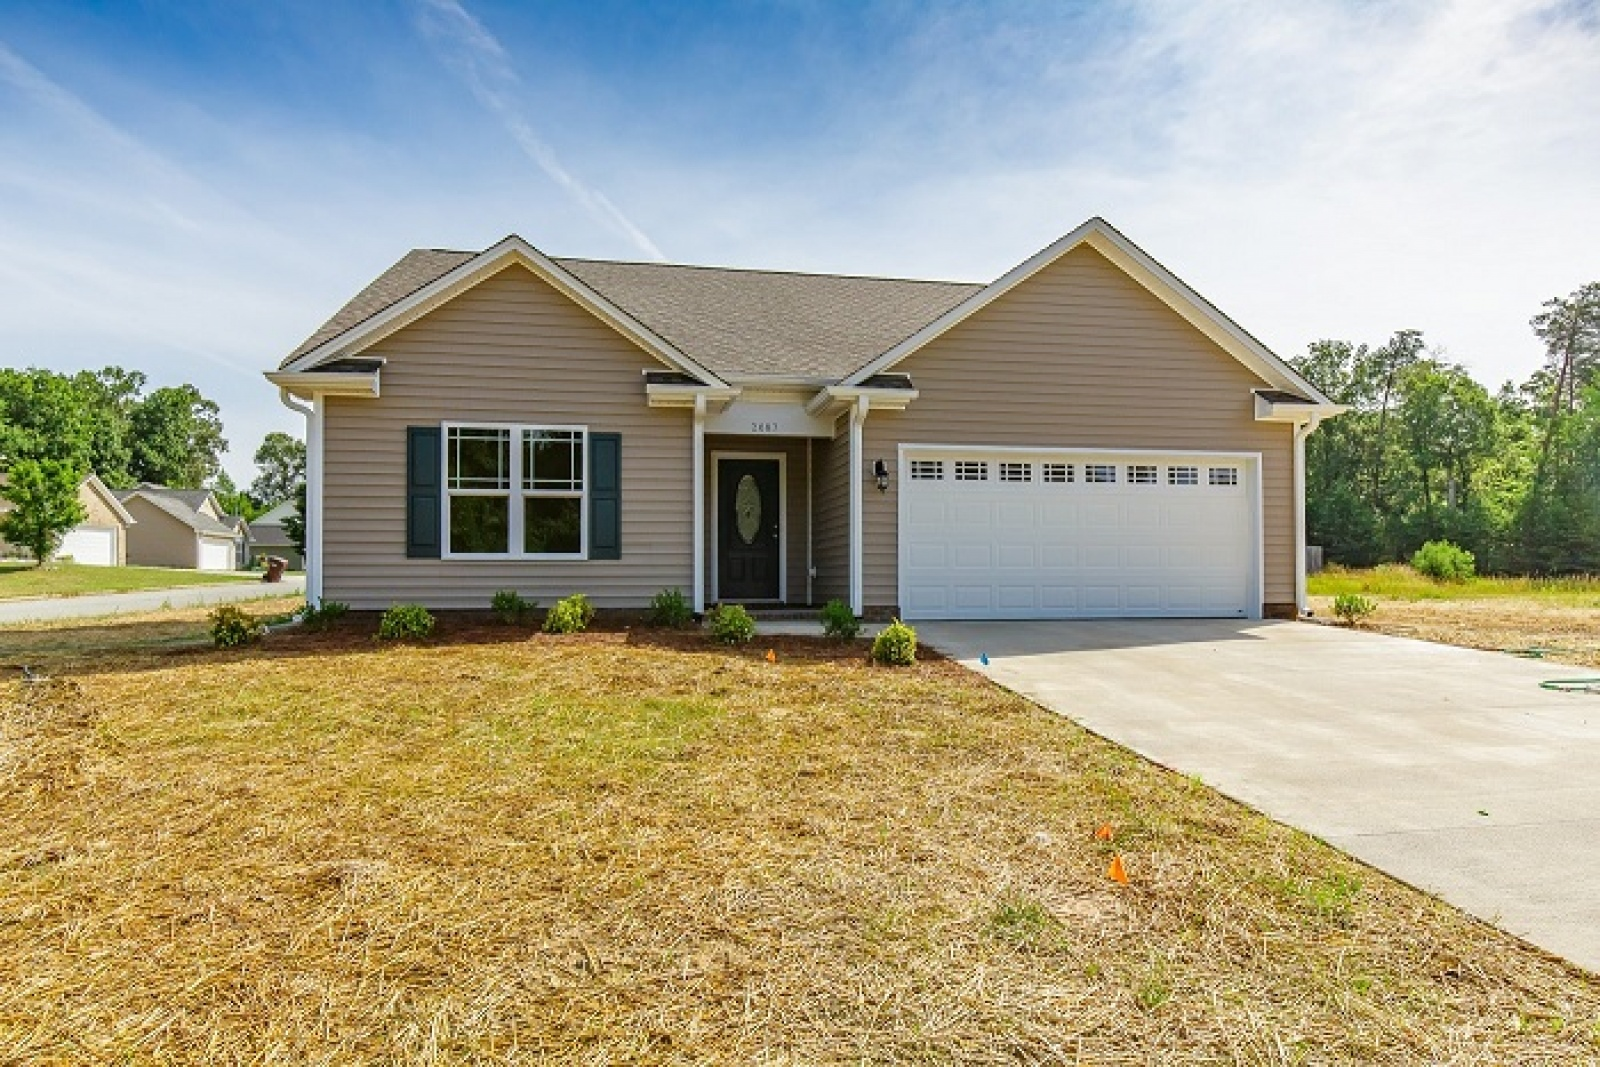 2087 Dresden Dr., Burlington, North Carolina 27217, 3 Bedrooms Bedrooms, 6 Rooms Rooms,2 BathroomsBathrooms,Burchwood Commons,For Sale,Berringer,Dresden,1,1023